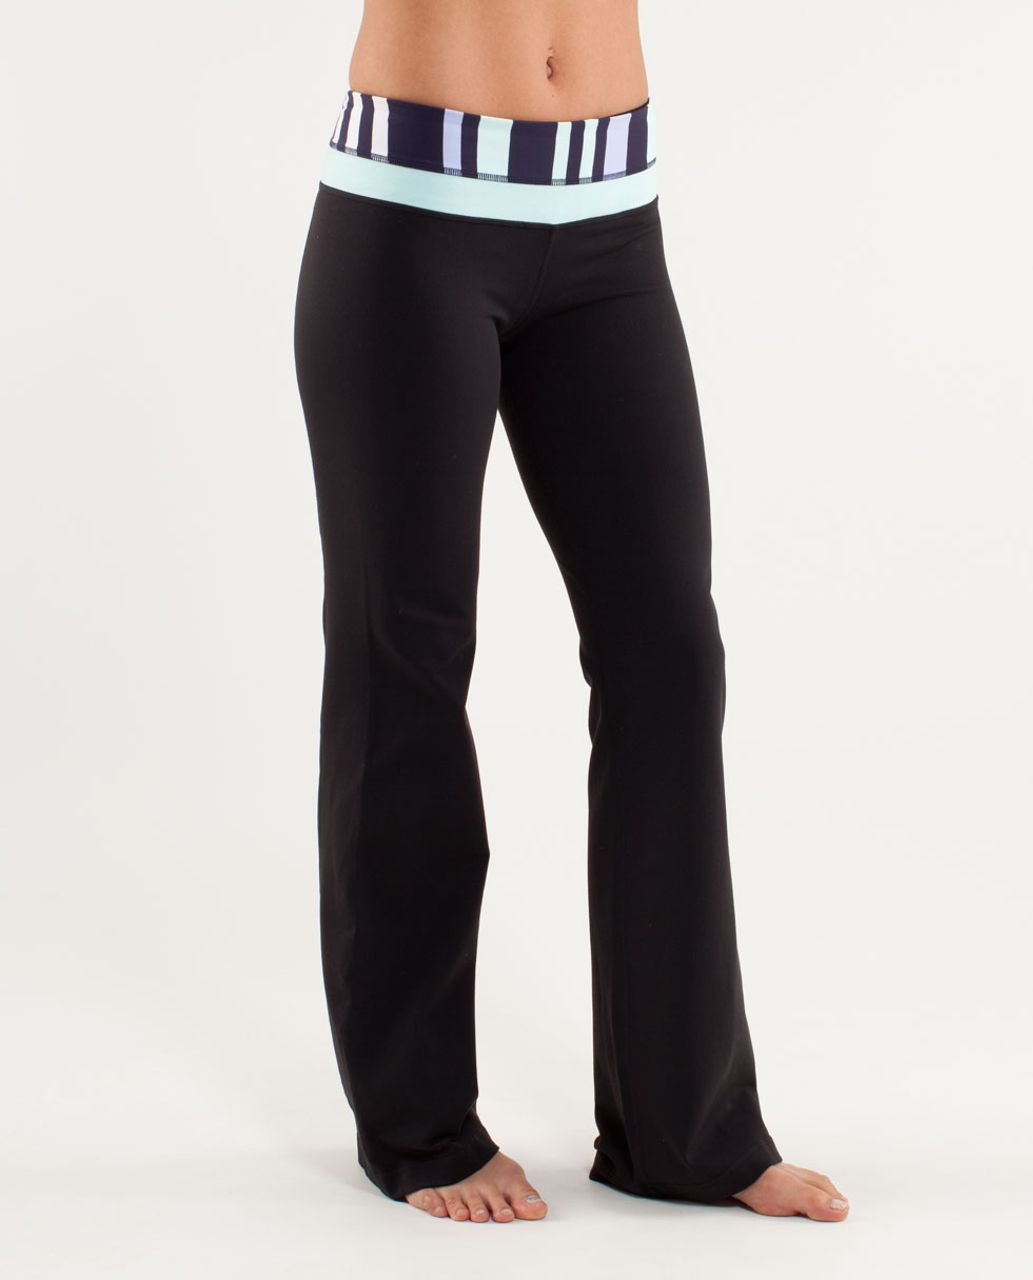 Lululemon Groove Pant (Tall) - Black /  Discover Stripe White Deep Indigo /  Heathered Aquamarine